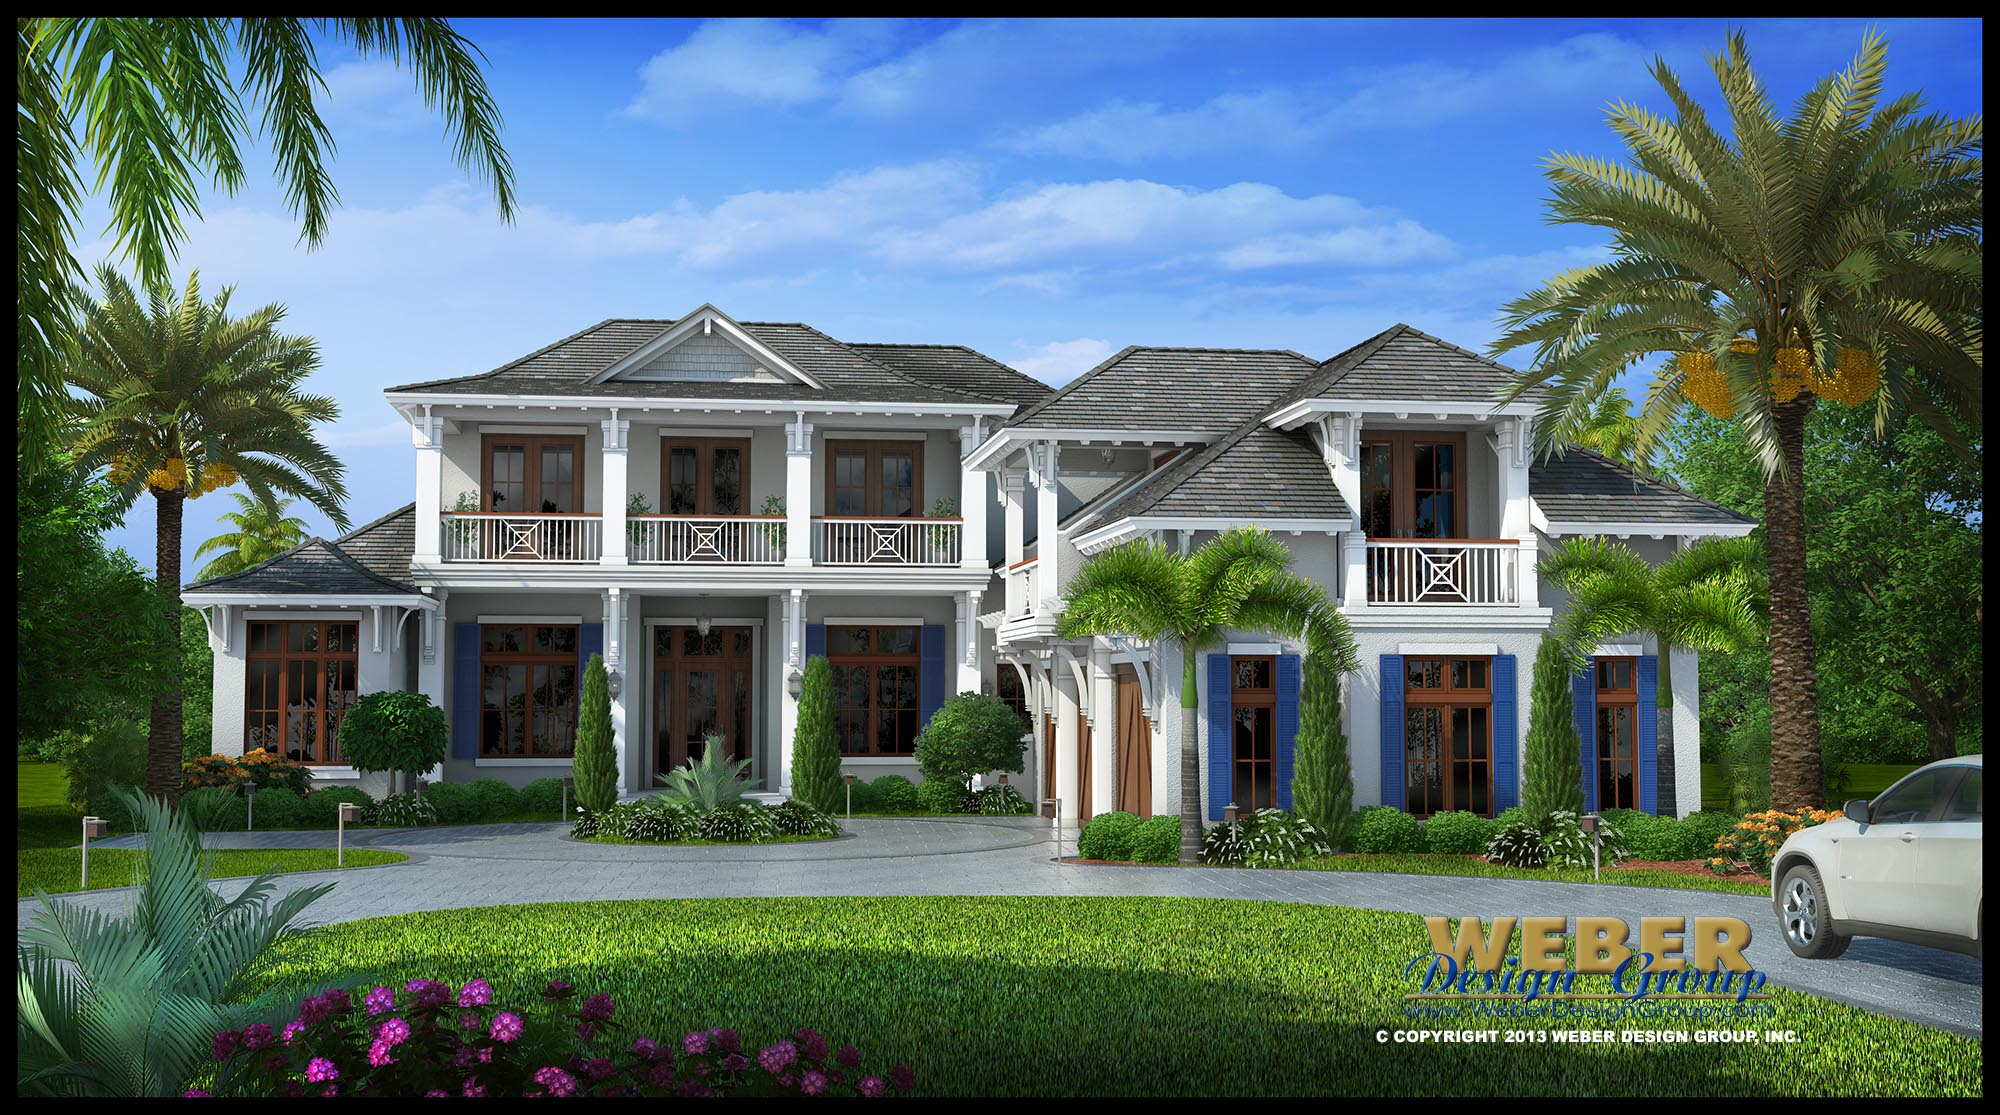 Contemporary west indies house plan villa veletta house for British west indies architecture